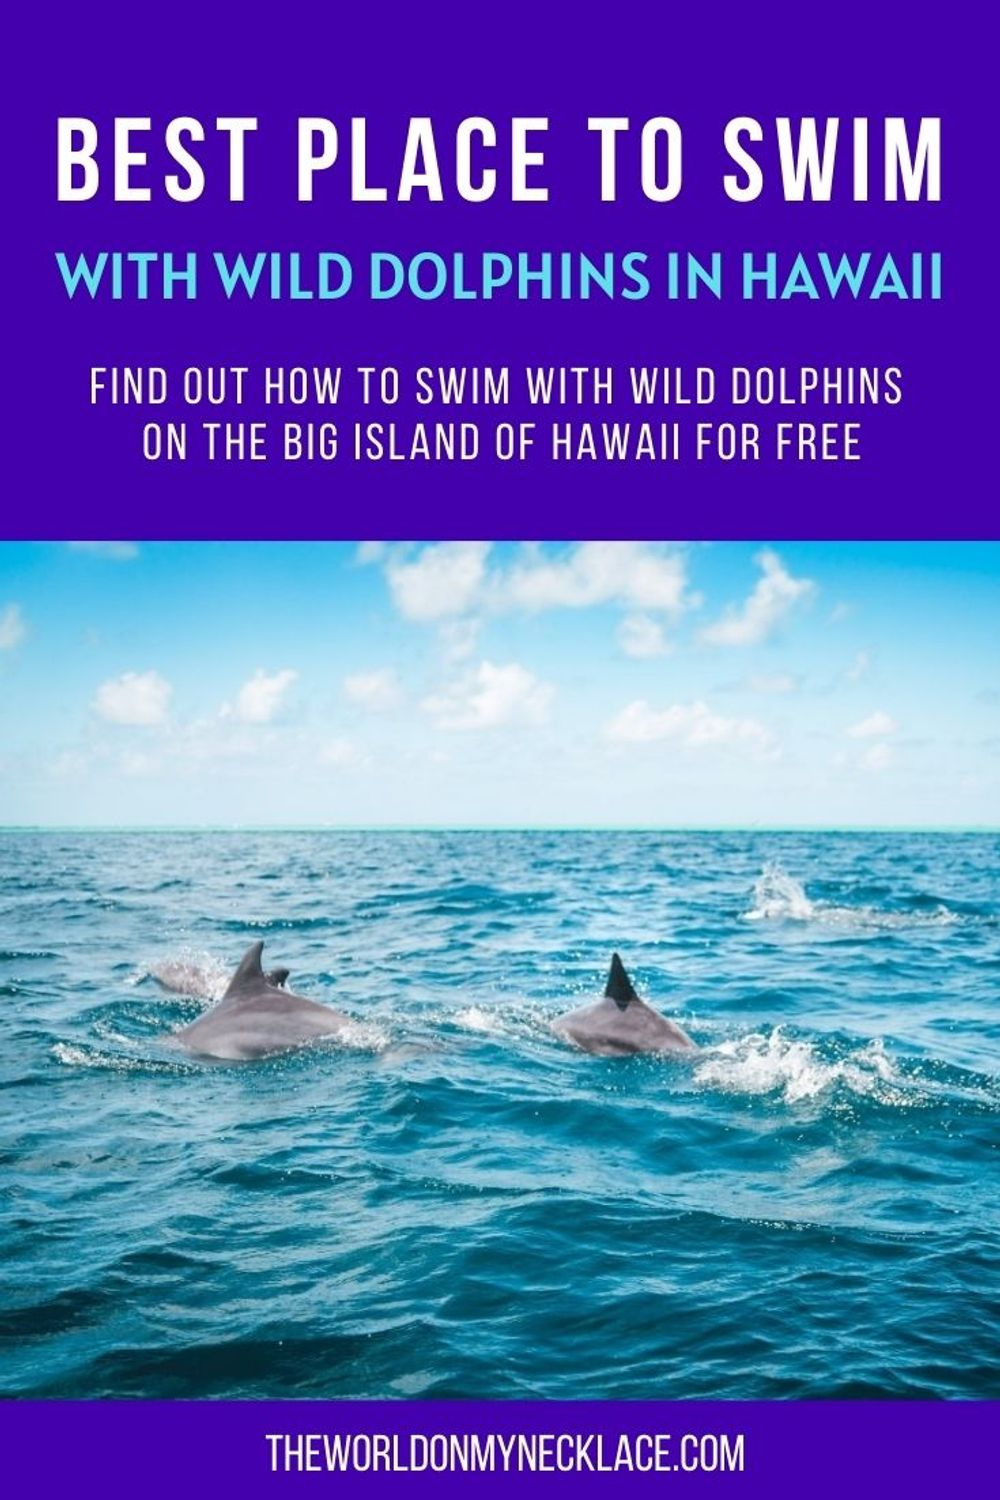 Best Place to Swim with Wild Dolphins in Hawaii